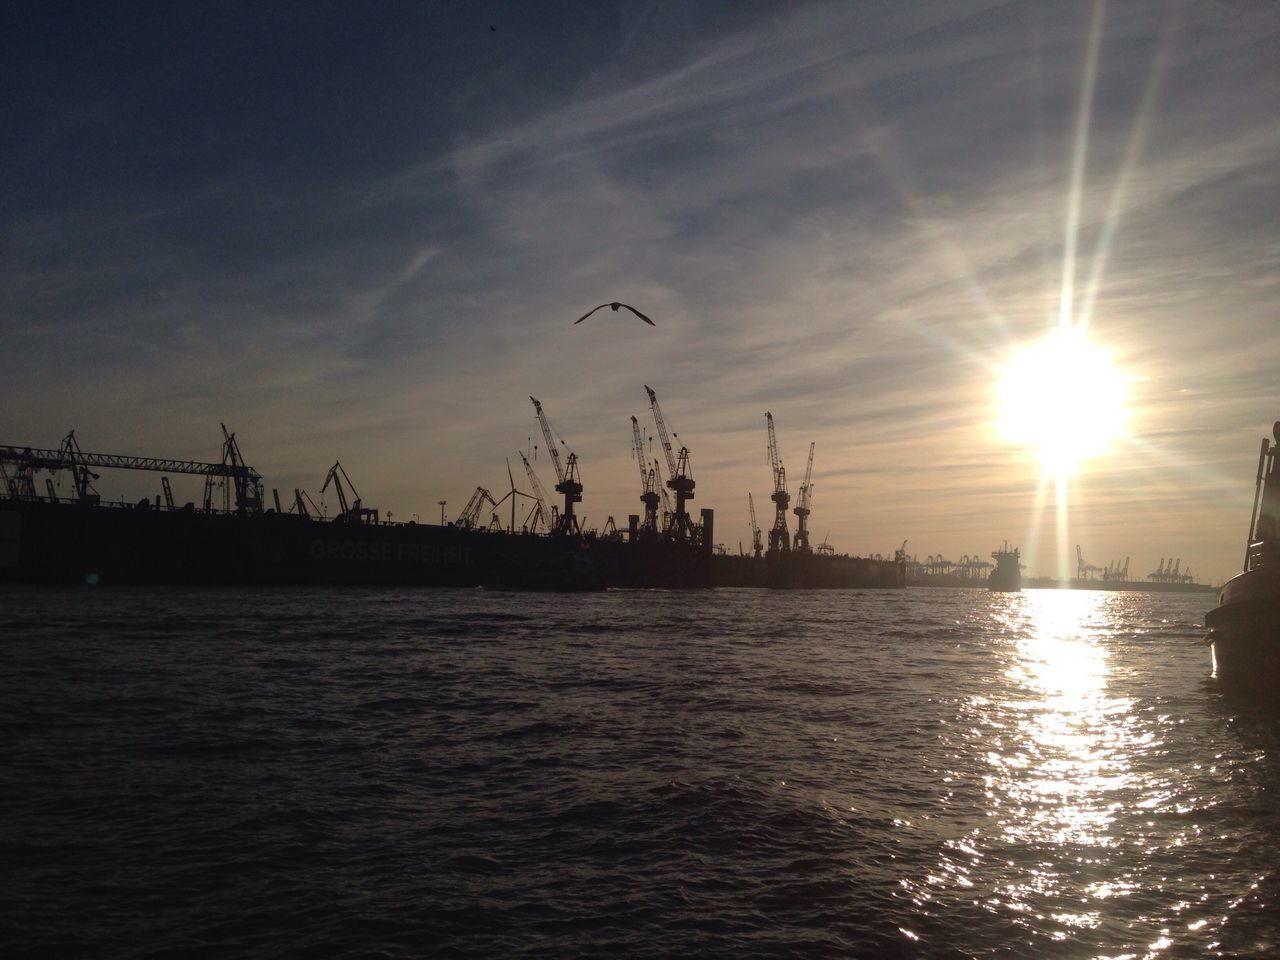 Silhouette Cranes Against Sky During Sunset At Harbor